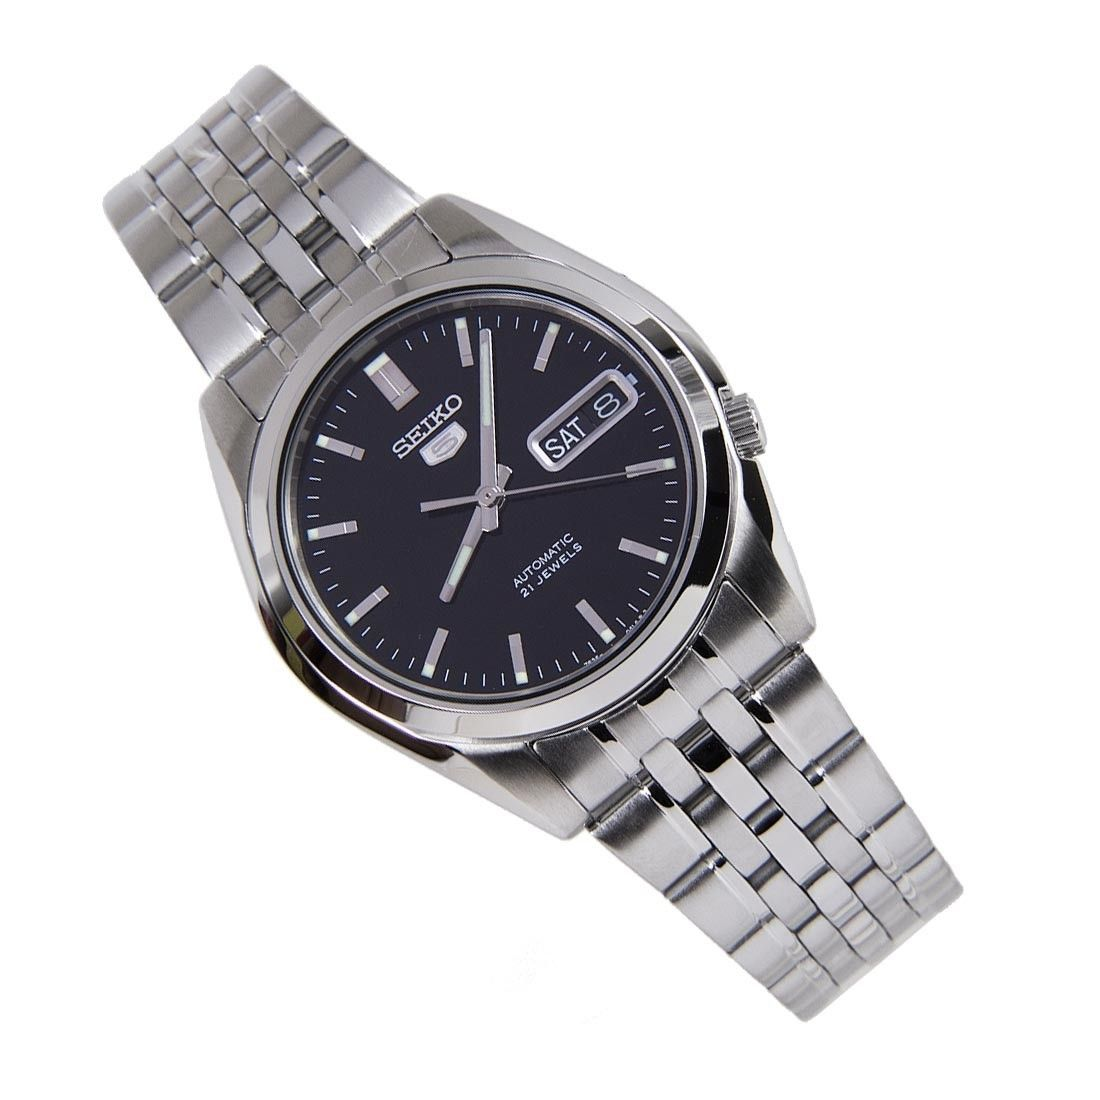 Sports Watch Store - SNK361K1 SNK361K Seiko 5 Analog 21 Jewels WR30m Mens Classic Silver Stainless Watch, $78.00 (http://www.sports-watch-store.com/snk361k1-snk361k-seiko-5-analog-21-jewels-wr30m-mens-classic-silver-stainless-watch/)